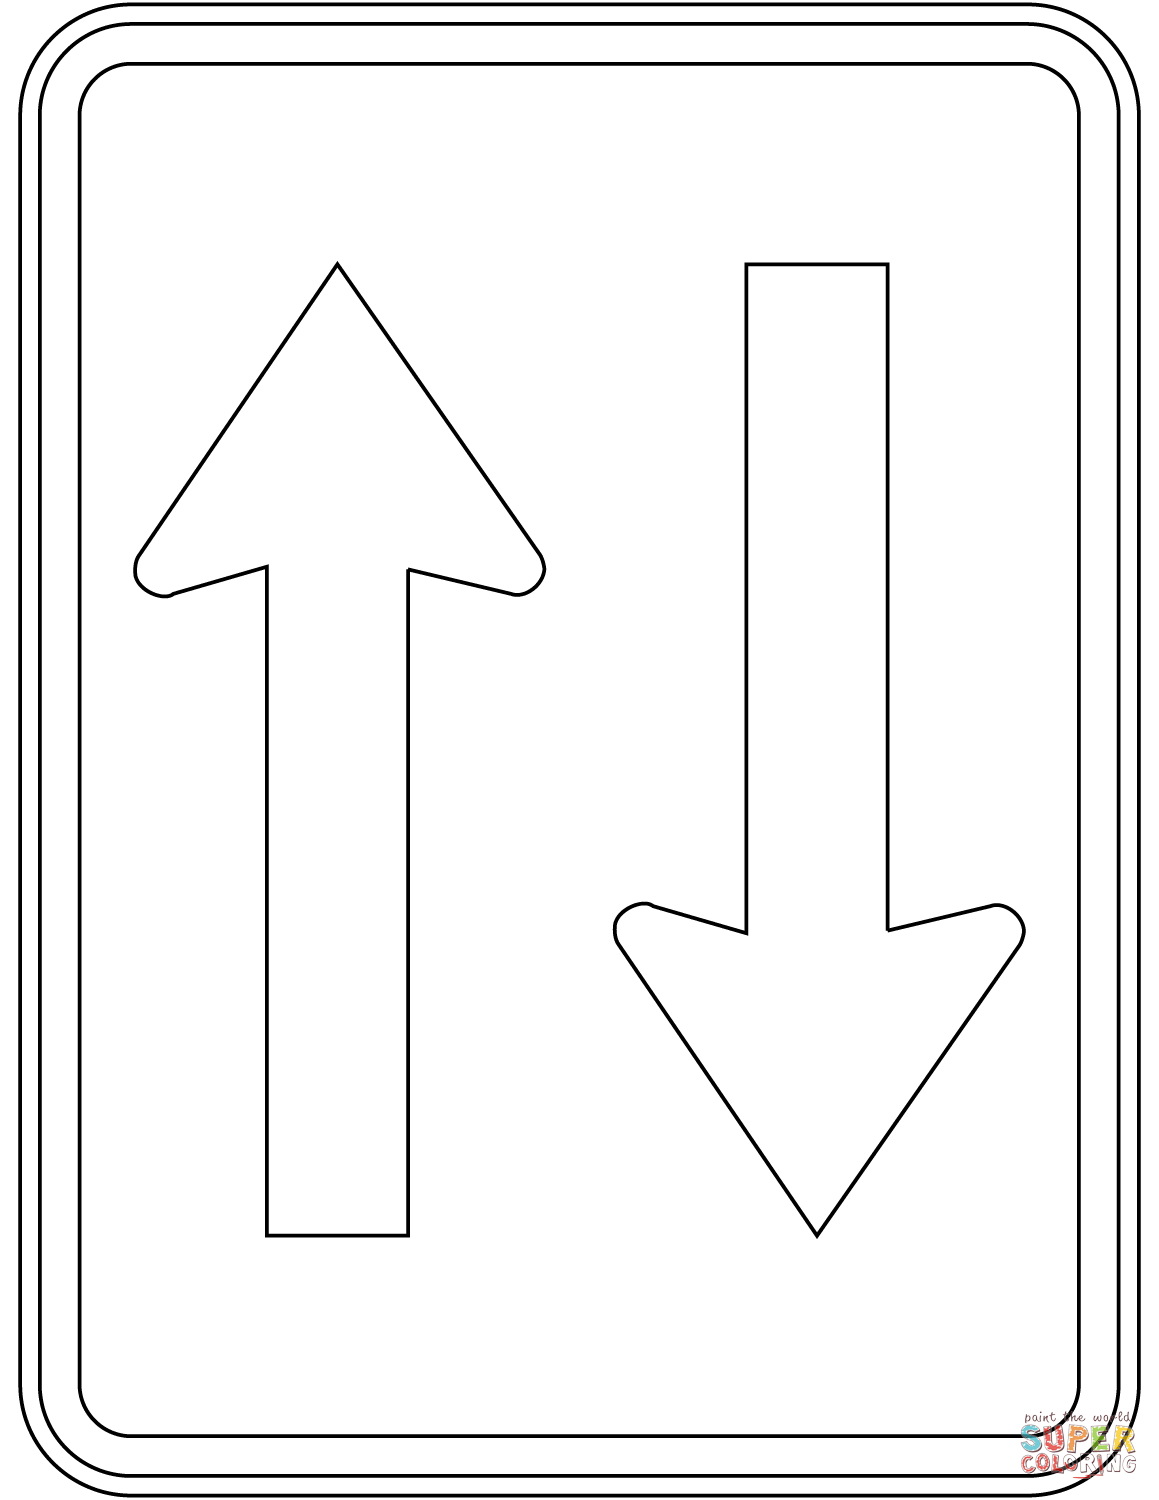 coloring printable road signs coloring page traffic signs coloring picture traffic printable coloring road signs